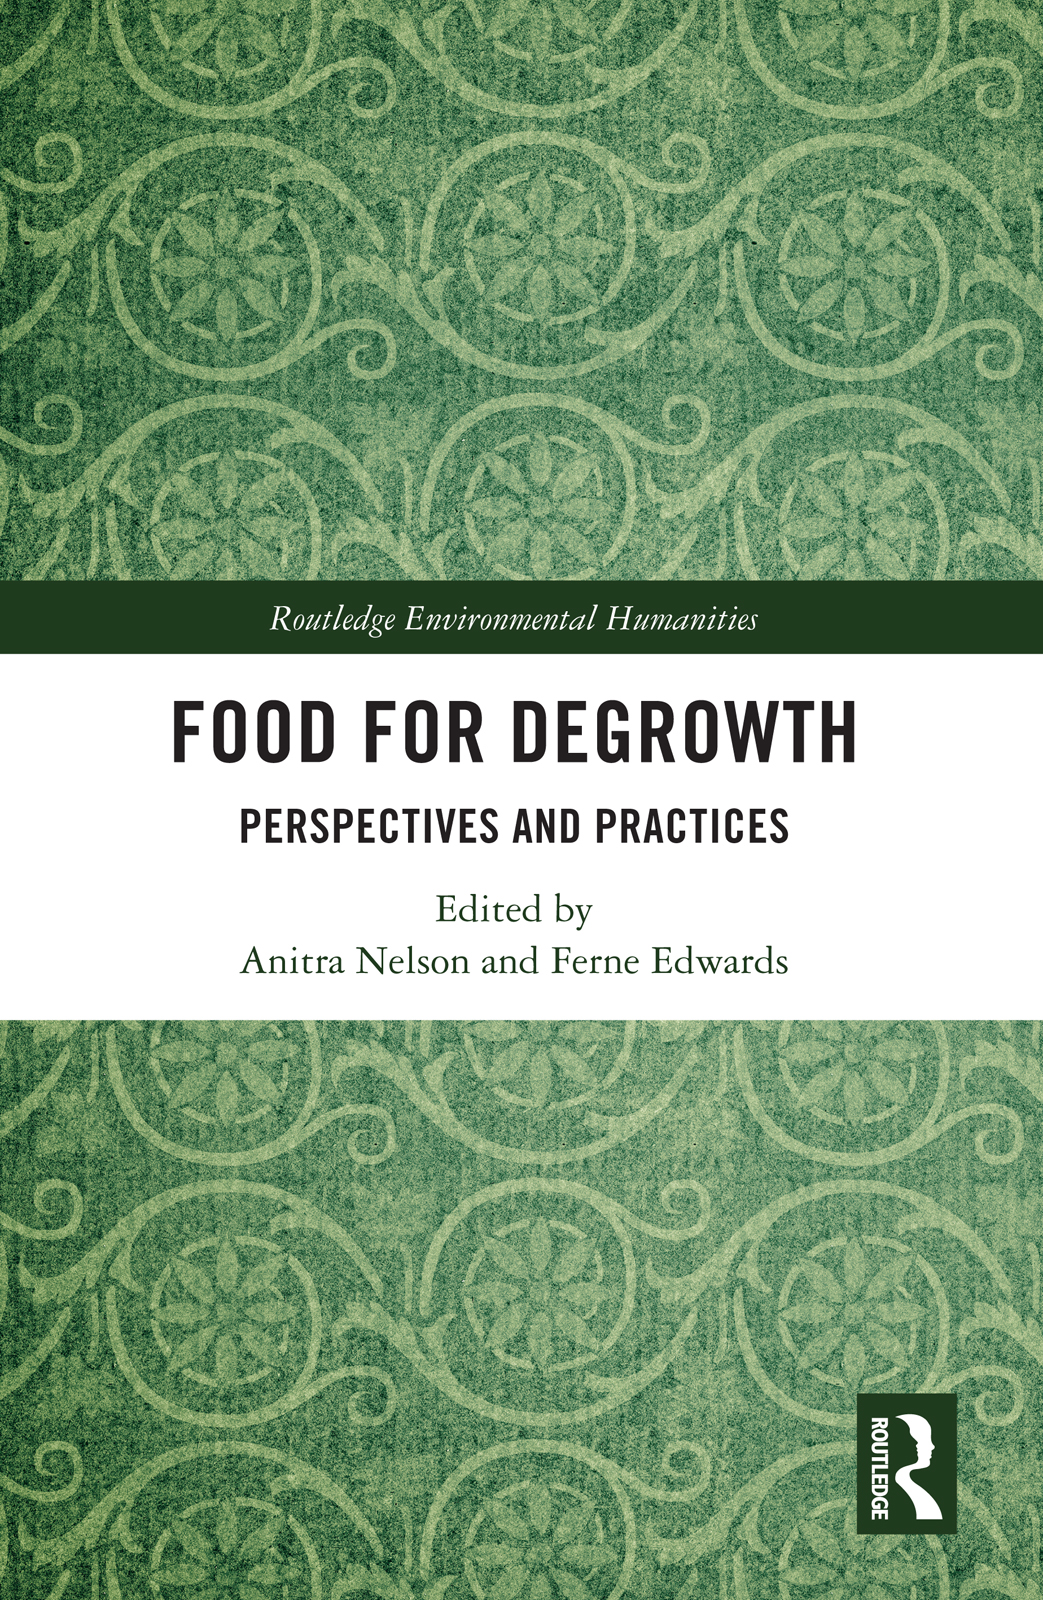 Learning degrowth from women's food knowledge and care in Kenya